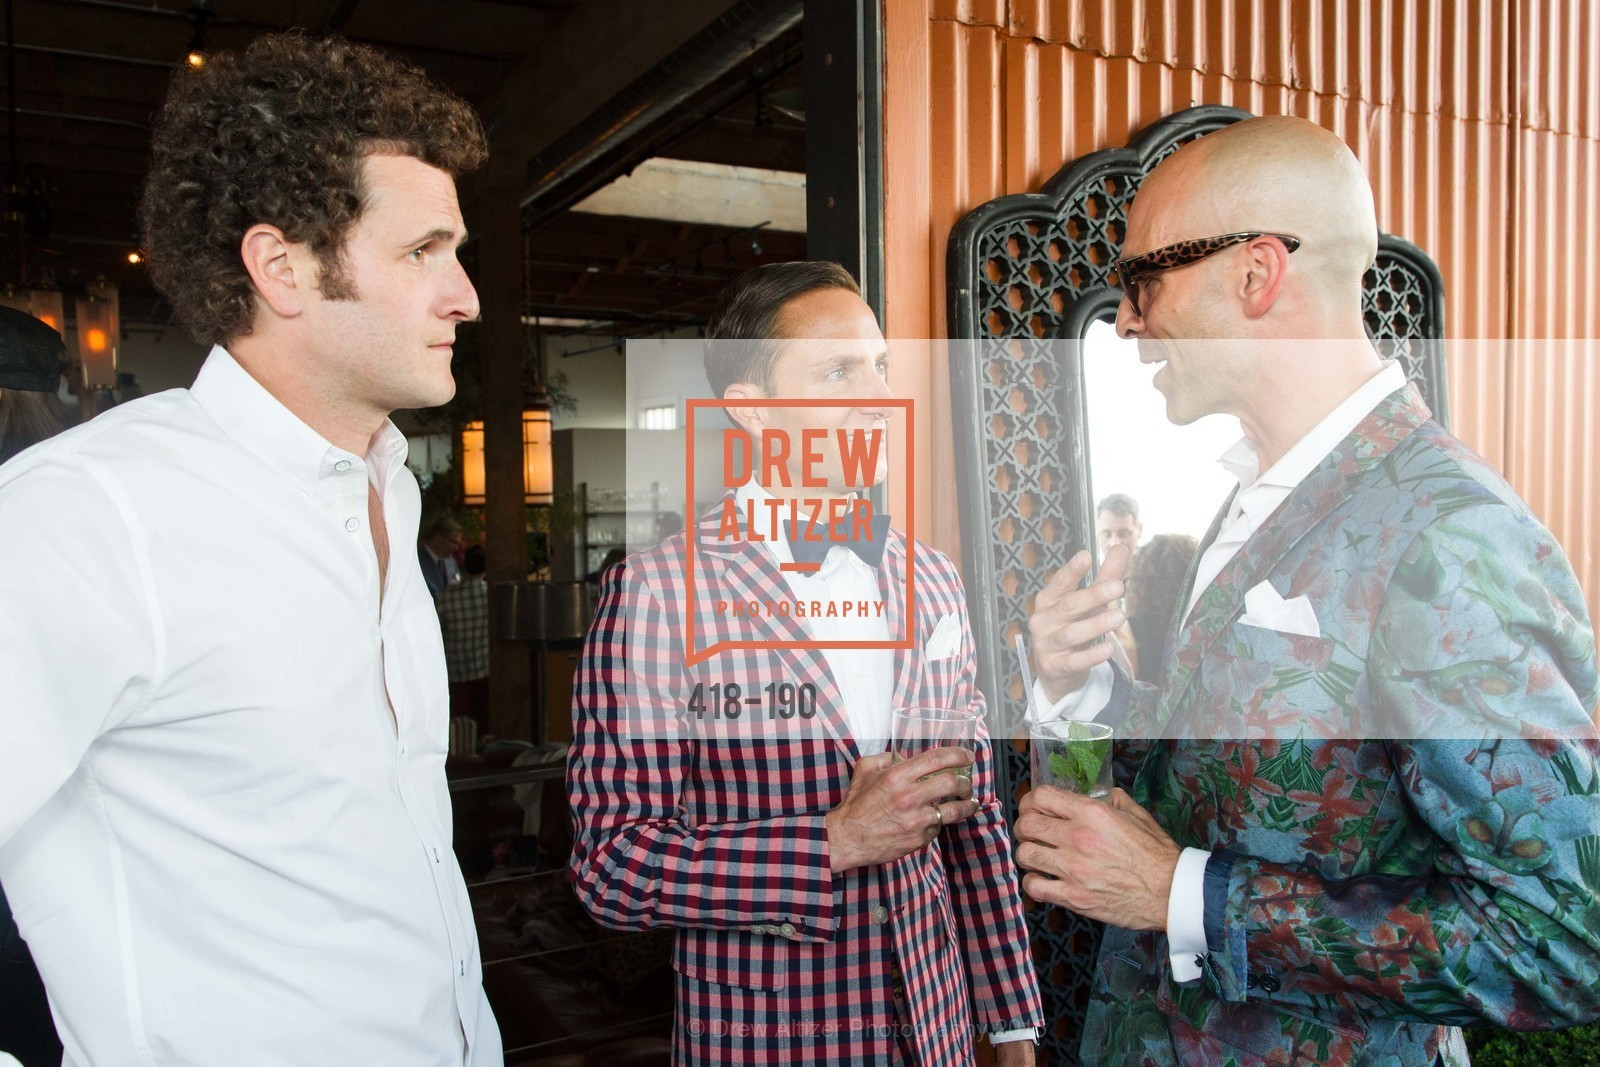 Ken Fulk, Tony Leo, KEN FULK'S New Furniture Line Unveiling at THE MAGIC FACTORY, The Magic Factory. 310 7th St, June 25th, 2015,Drew Altizer, Drew Altizer Photography, full-service agency, private events, San Francisco photographer, photographer california